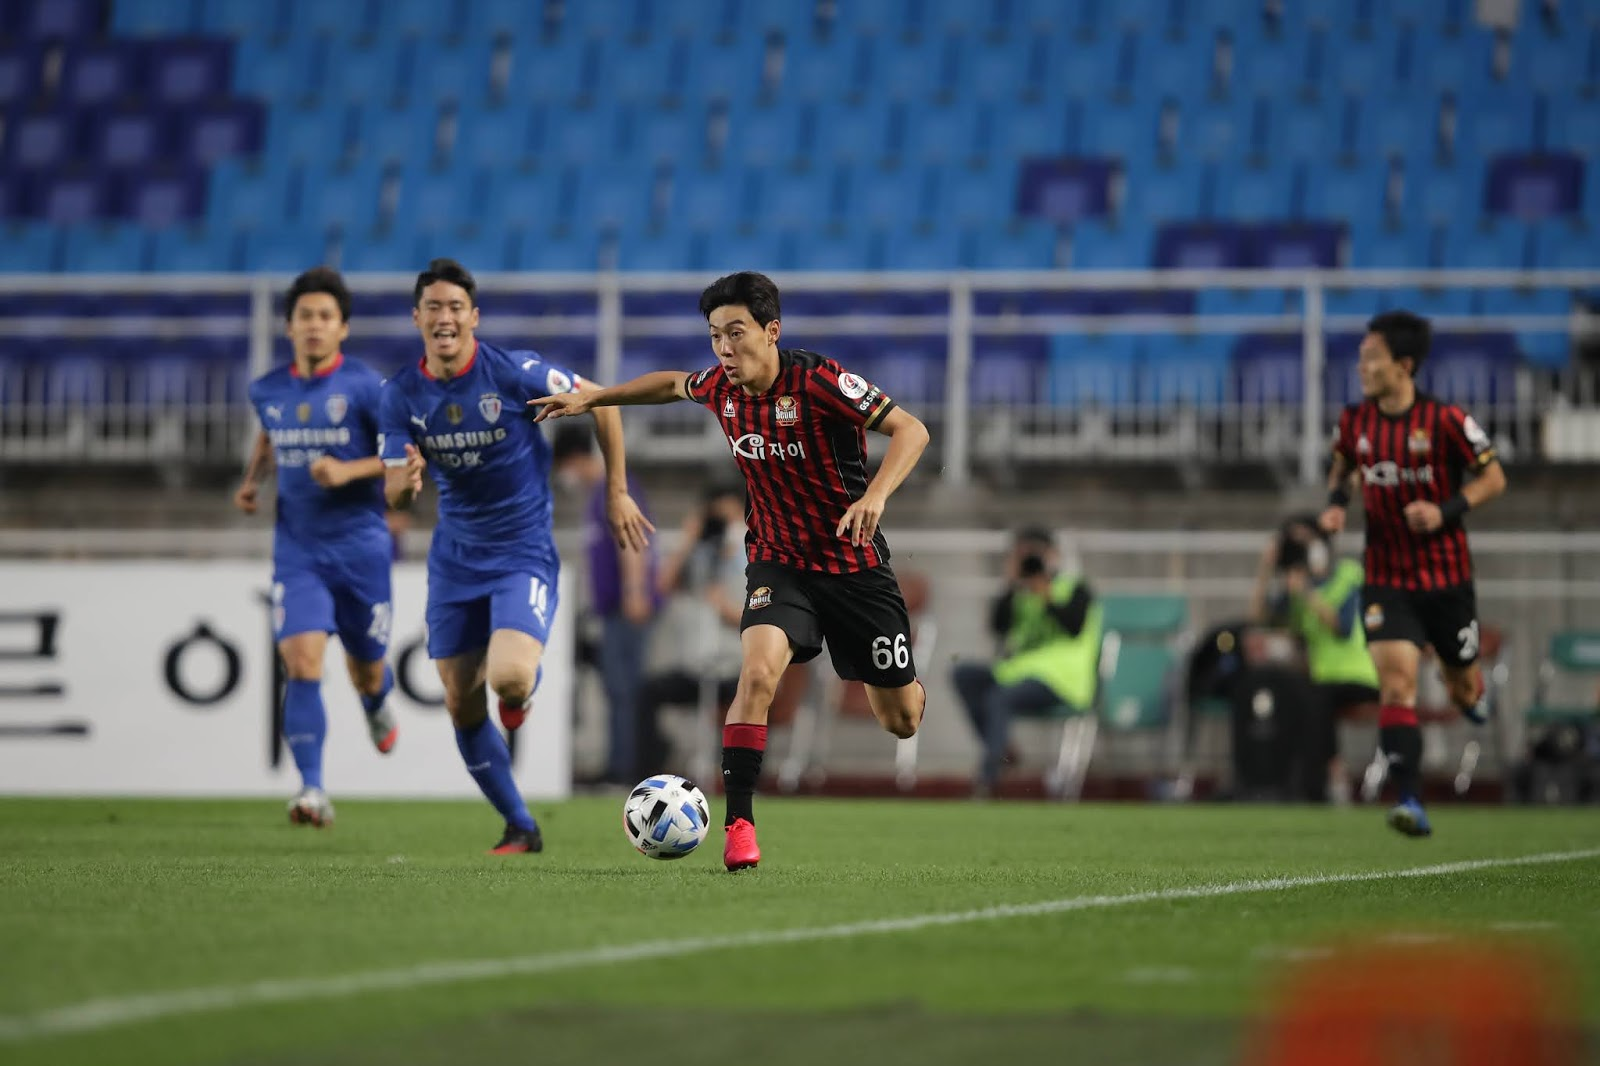 Super Match Preview: FC Seoul vs Suwon Samsung Bluewings K League 1 Round 20